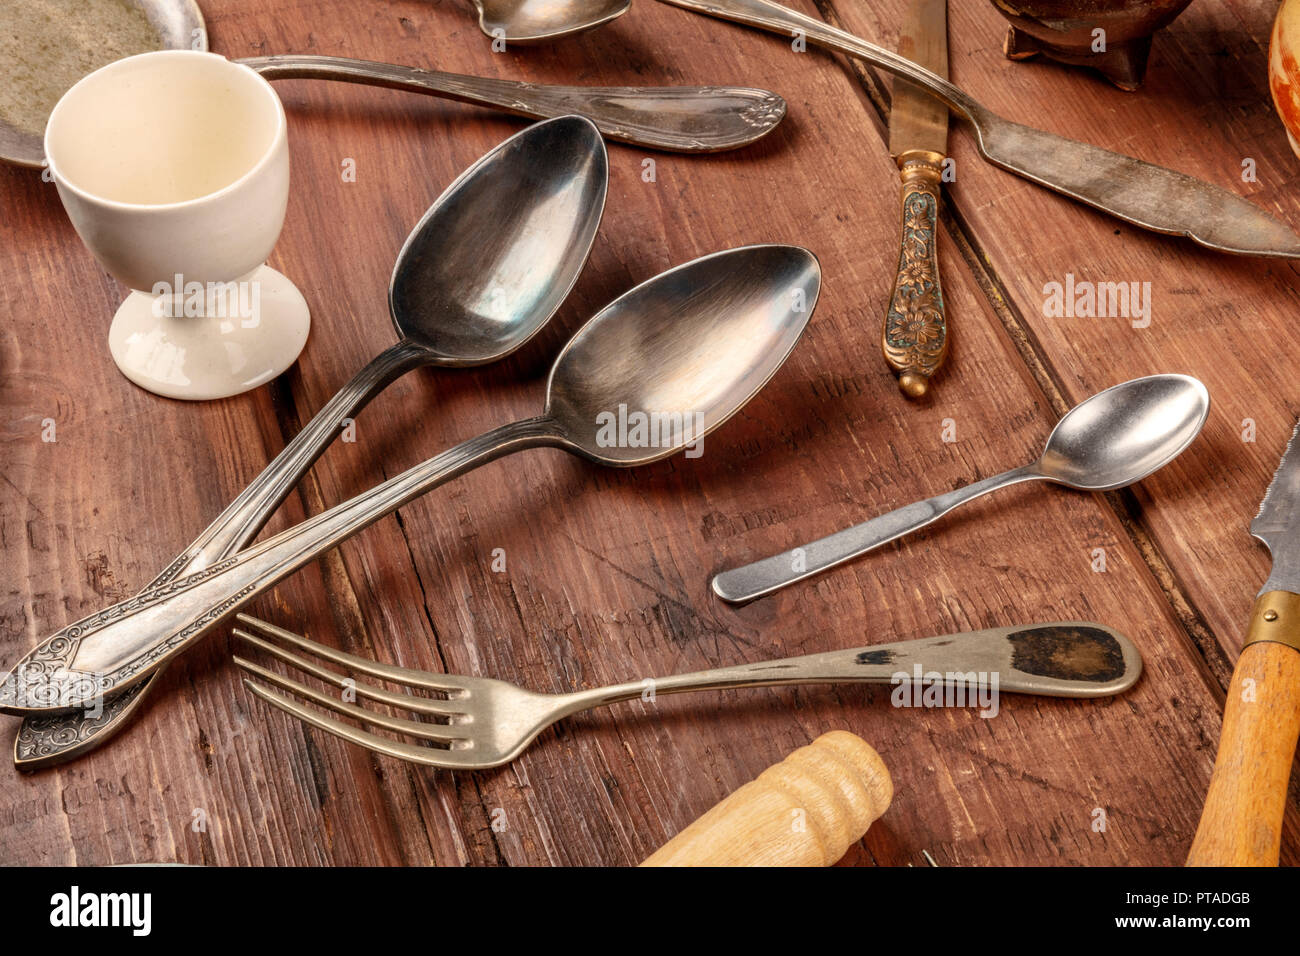 A photo of many vintage kitchen objects and cutlery from an old restaurant, flea market stuff on a wooden background Stock Photo